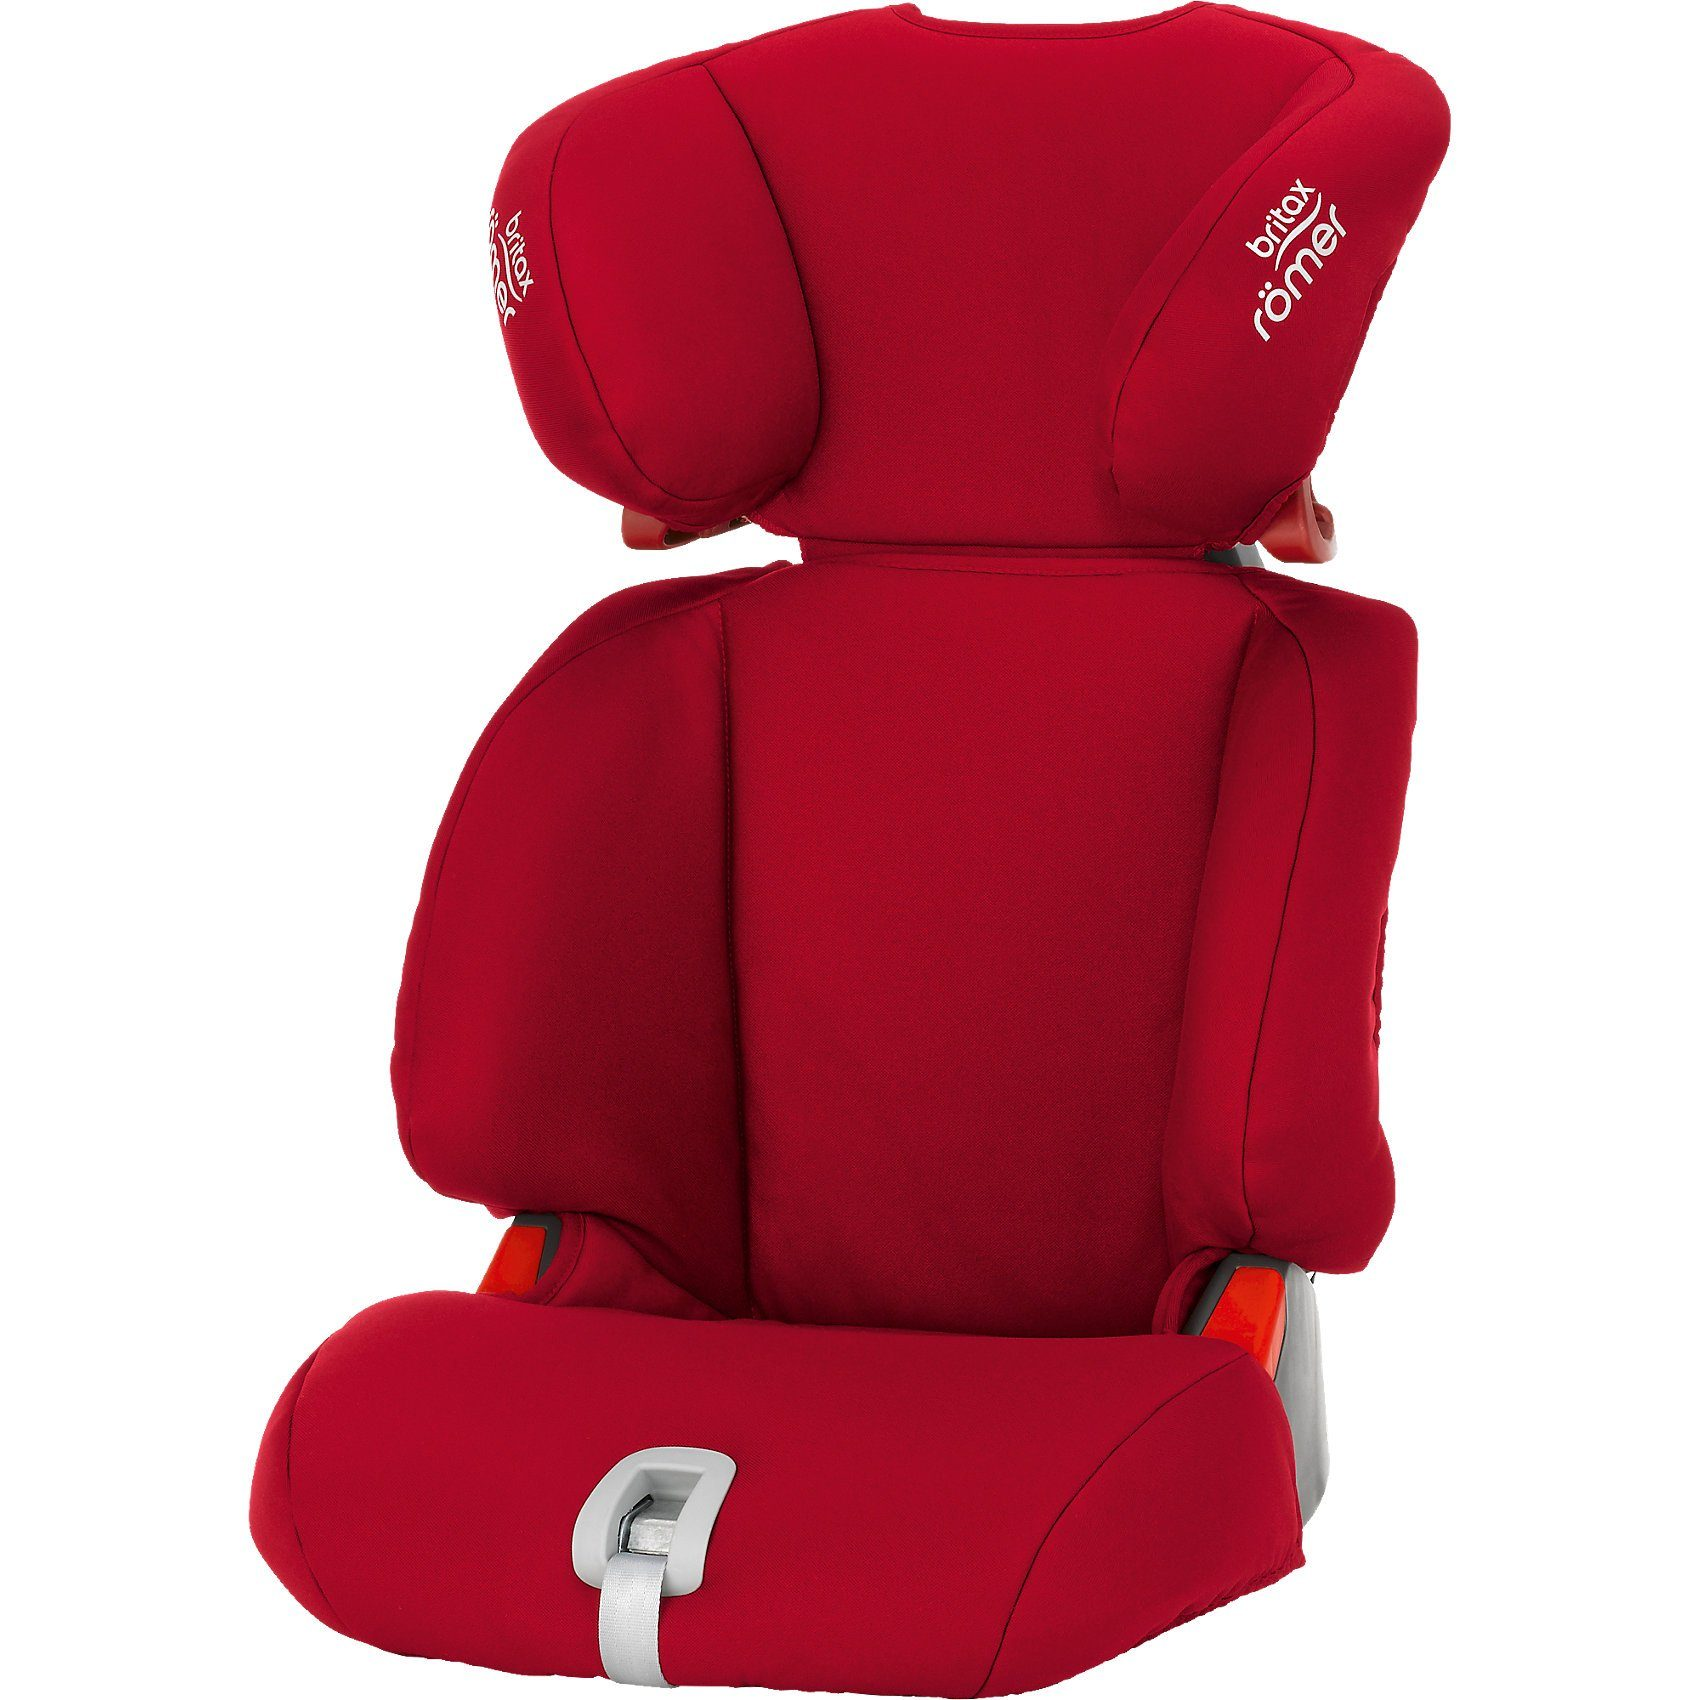 Britax Auto-Kindersitz Discovery SL, Flame Red, 2016